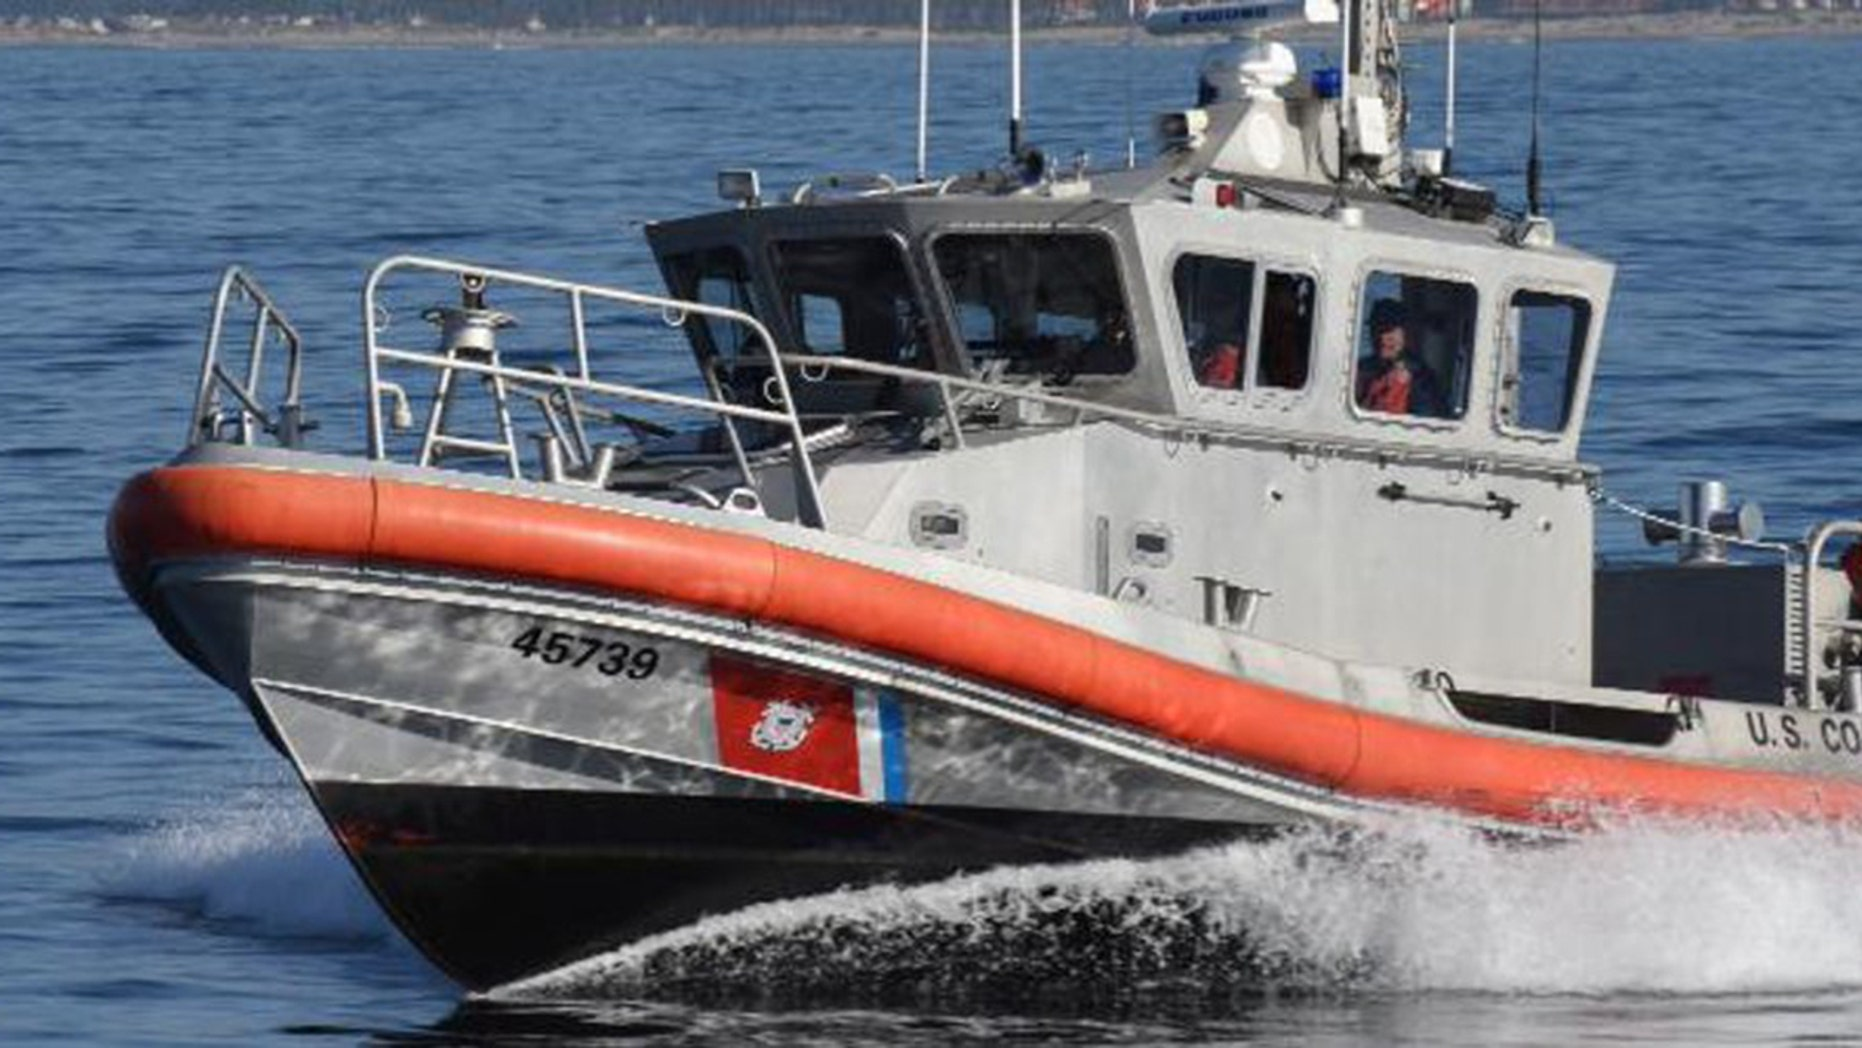 Westlake Legal Group coast-guard-los-angeles 34 people killed after boat catches fire off California's Santa Cruz Island: officials Robert Gearty fox-news/us/us-regions/west/california fox news fnc/us fnc article 3bac2904-9a74-5730-916f-7e6319379884